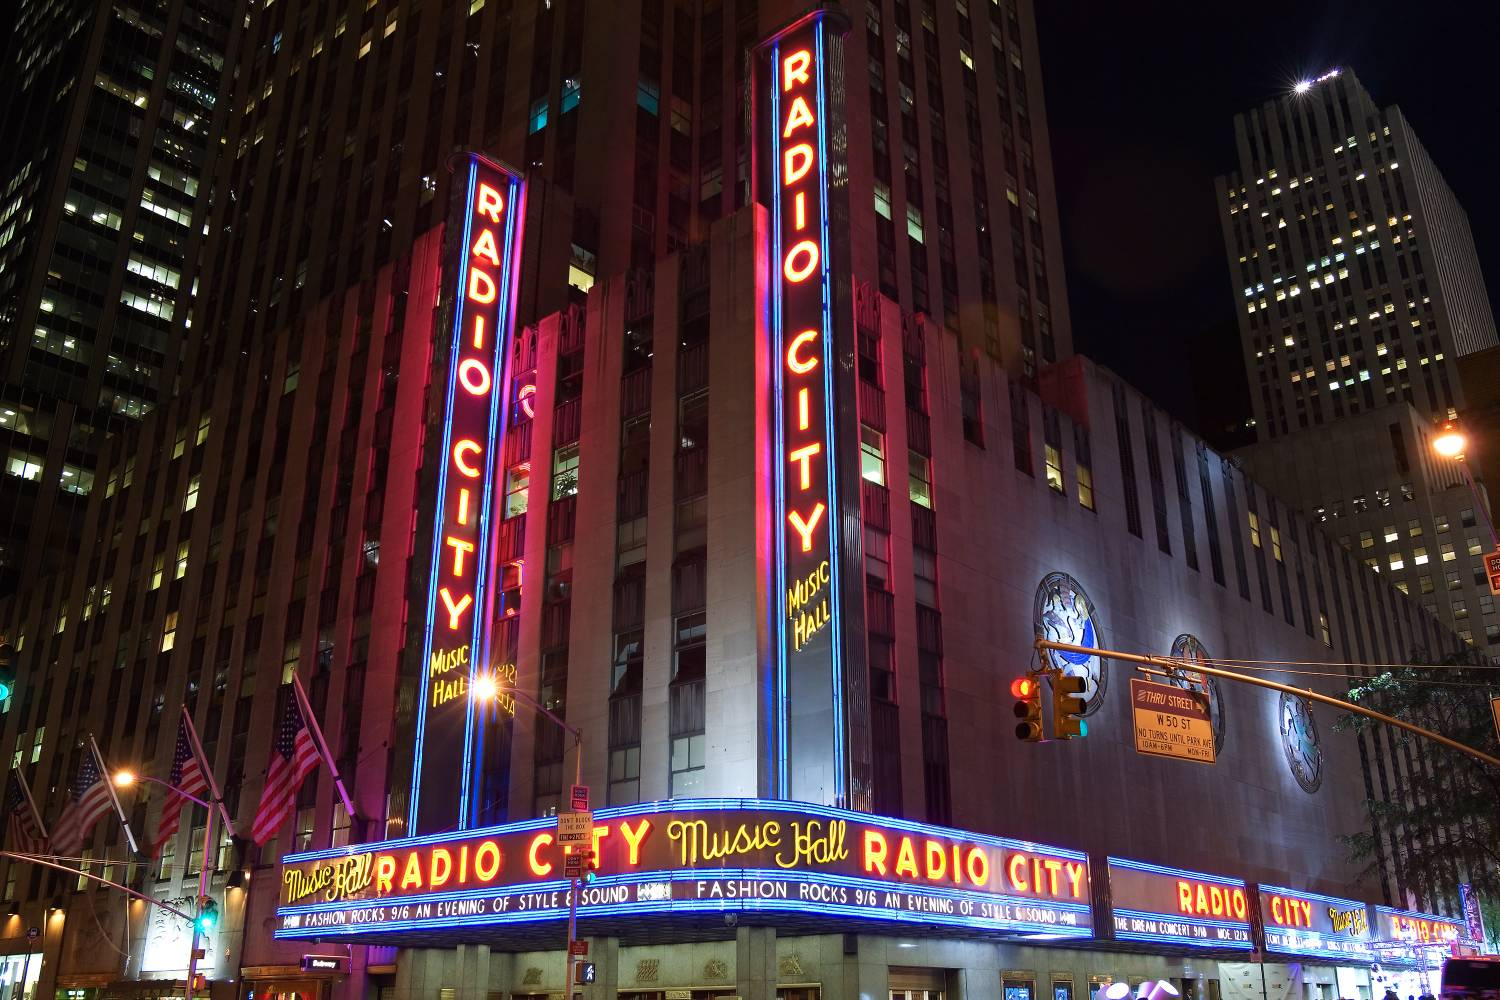 Radio City Music Hall at Rockefeller Center